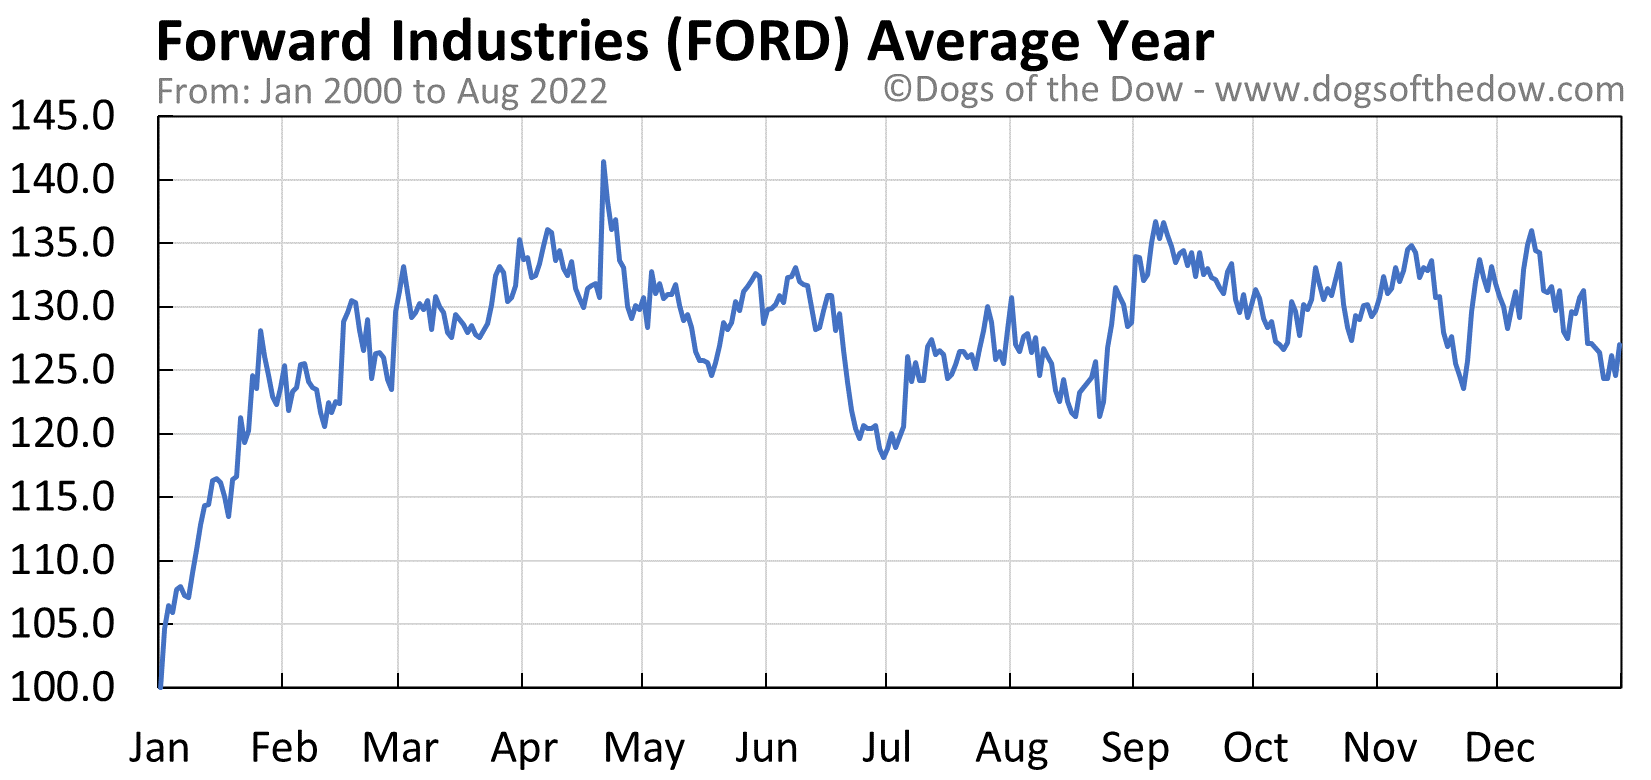 FORD average year chart